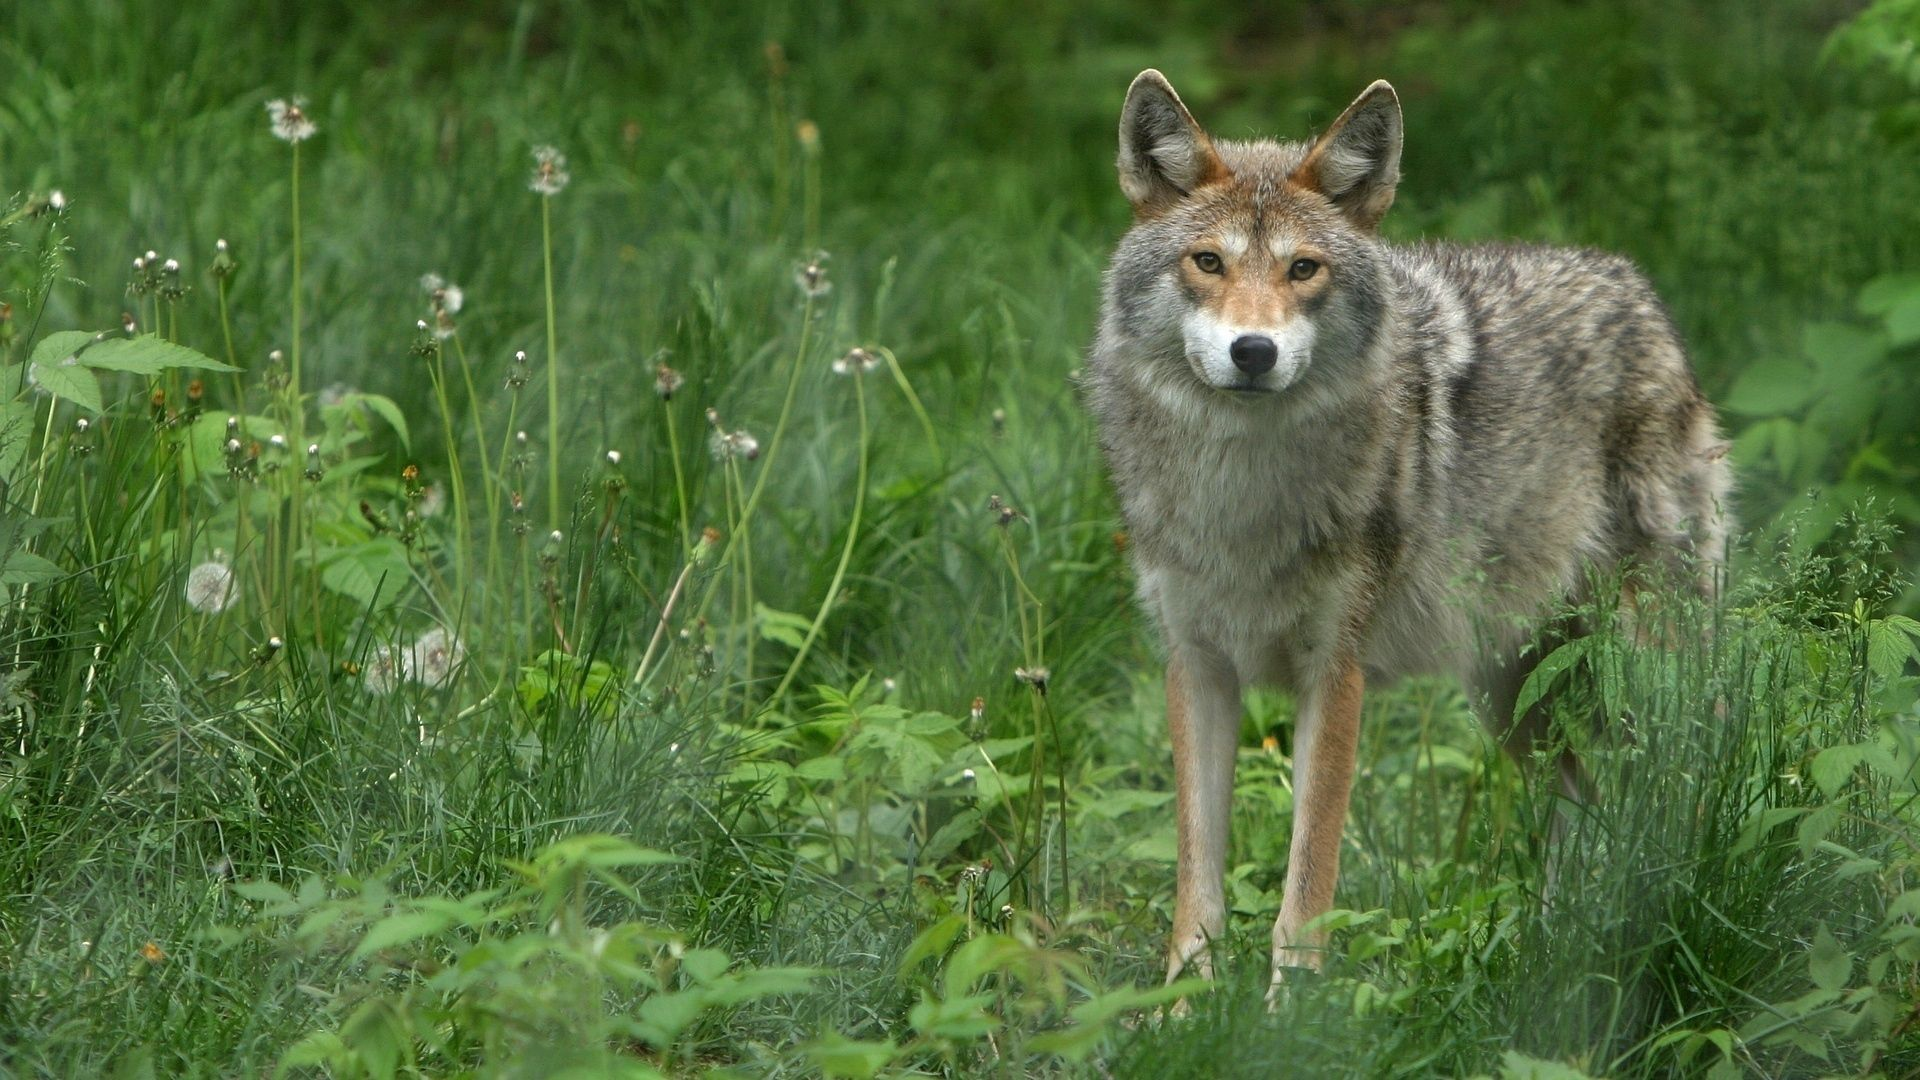 79301 download wallpaper Animals, Grass, Dandelions, Grey Wolf screensavers and pictures for free